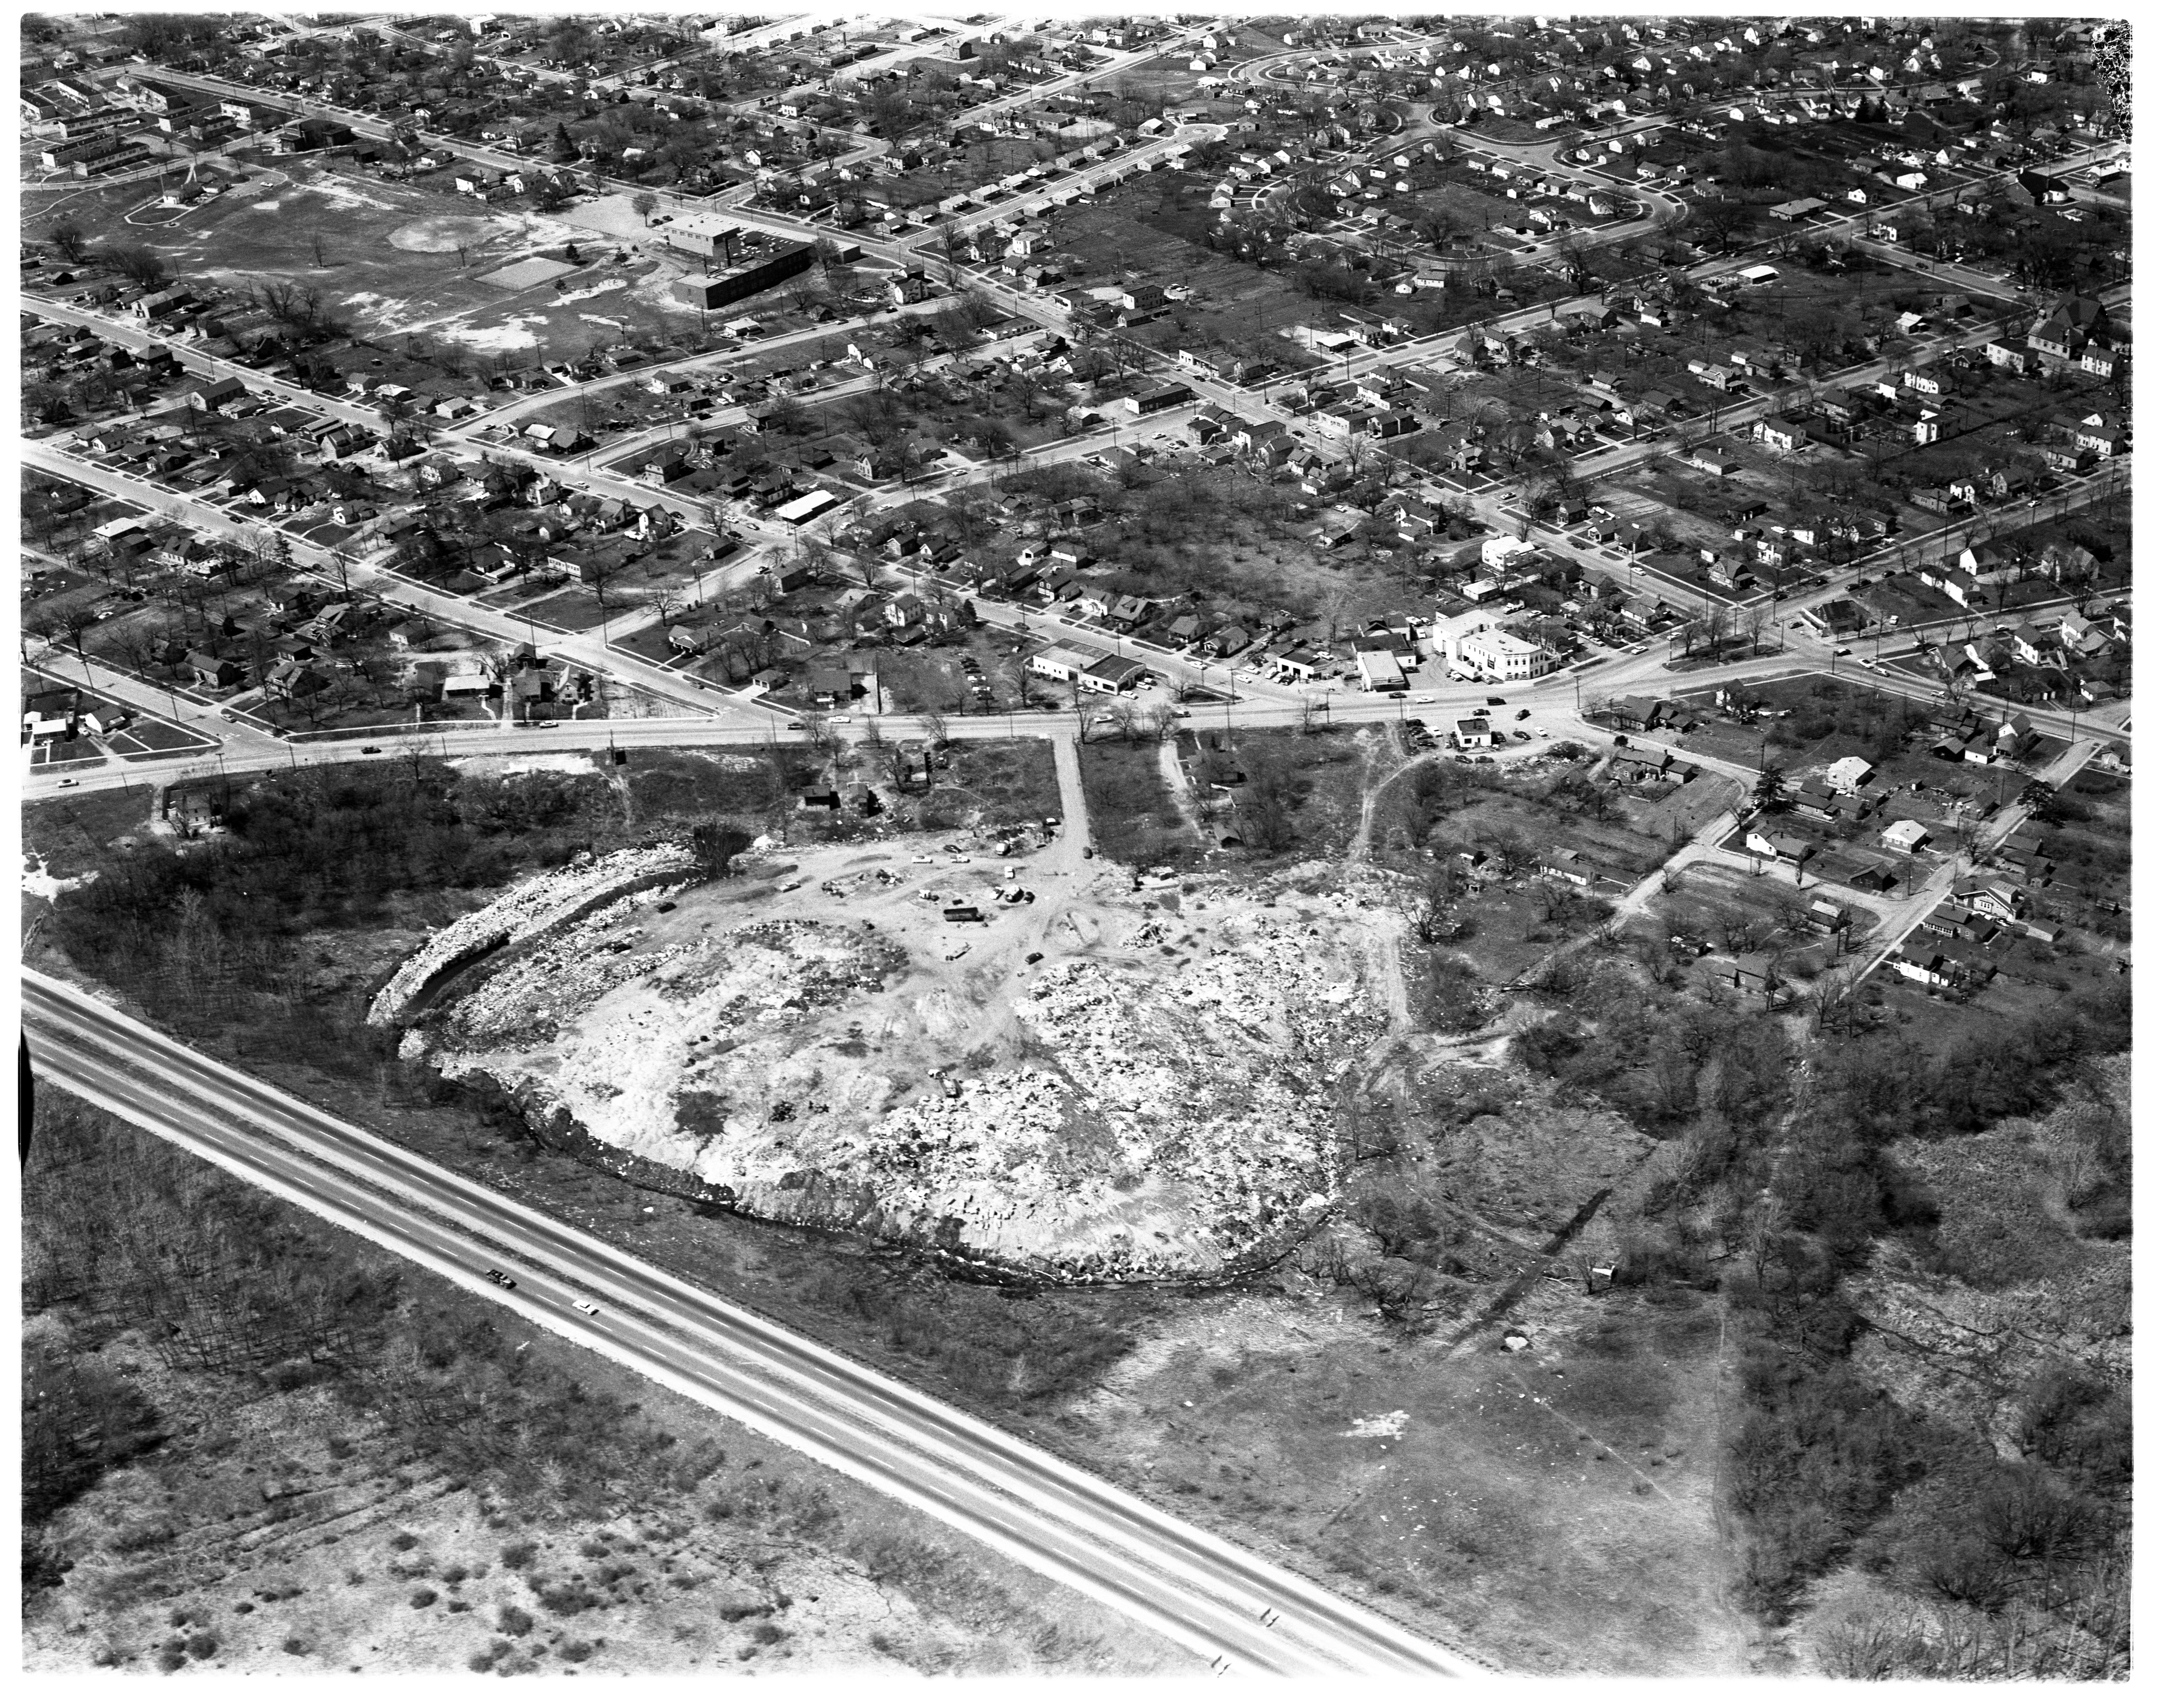 Aerial Photograph of Ypsilanti City Dump, June 1959 image